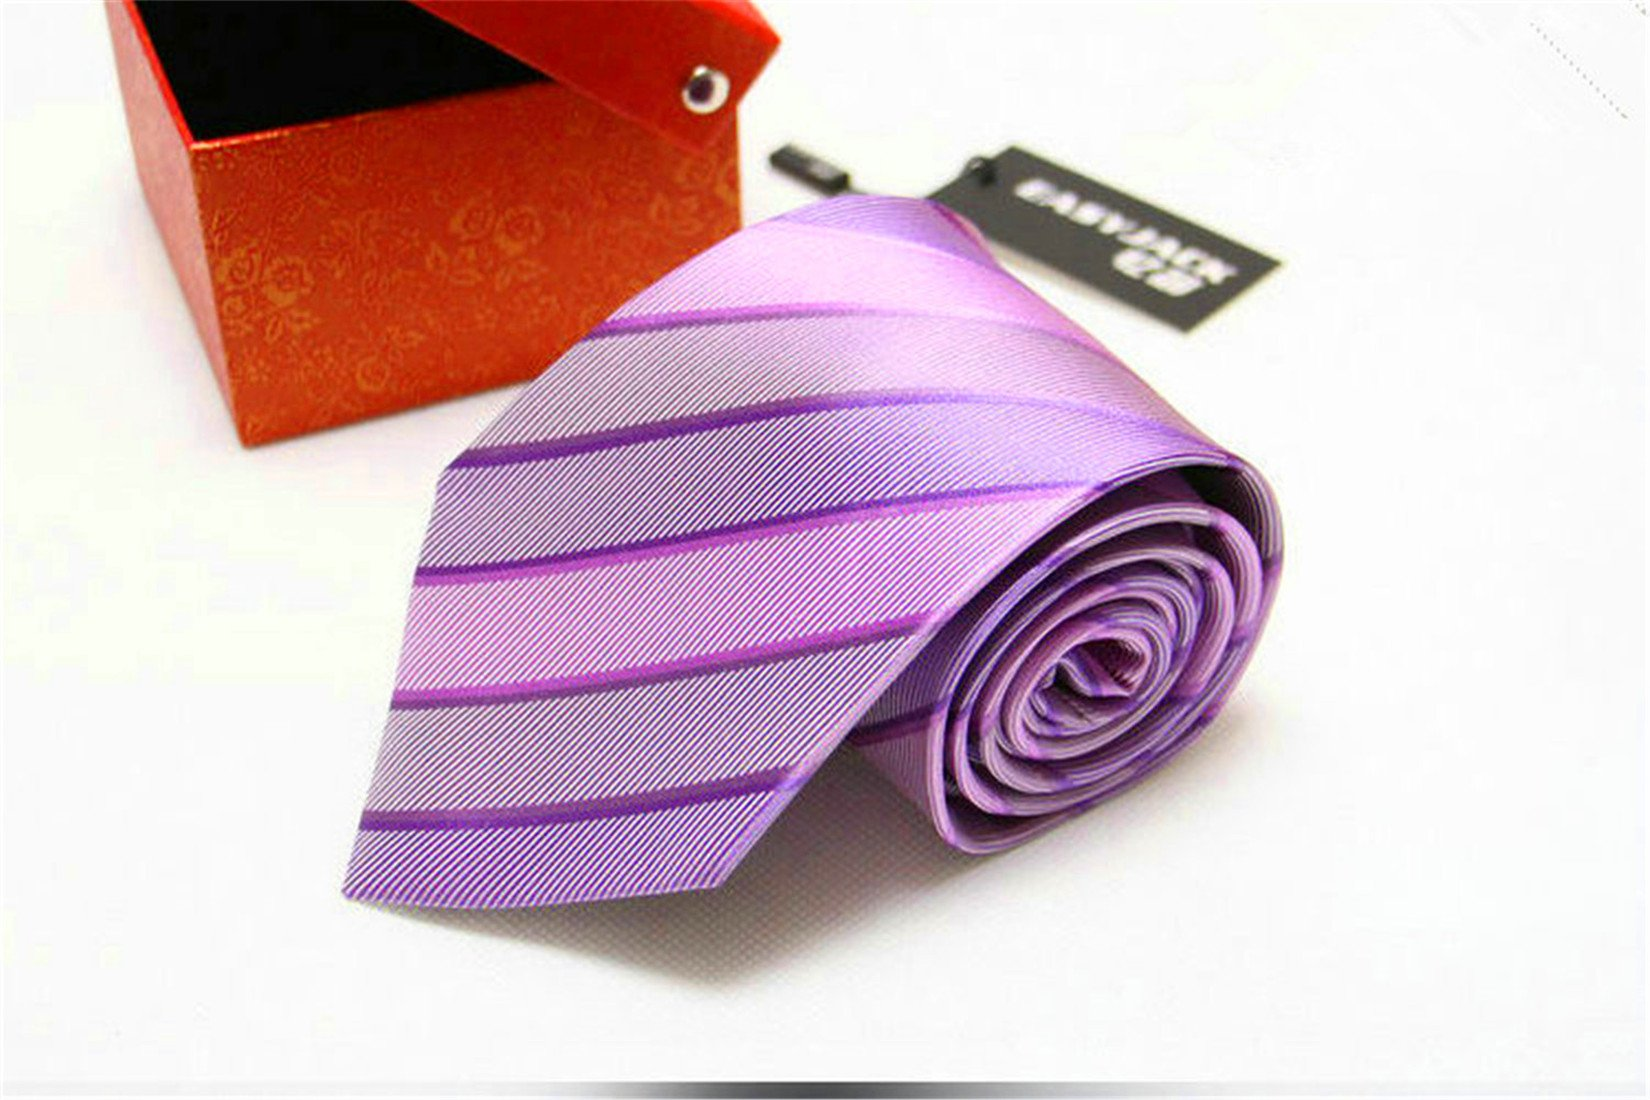 Men's Silk Tie Jacquard Weave Stripe Waterproof Collection Suit Necktie 3.54'' Business Formal Wedding Neckwear Gift (25 Colors Available)